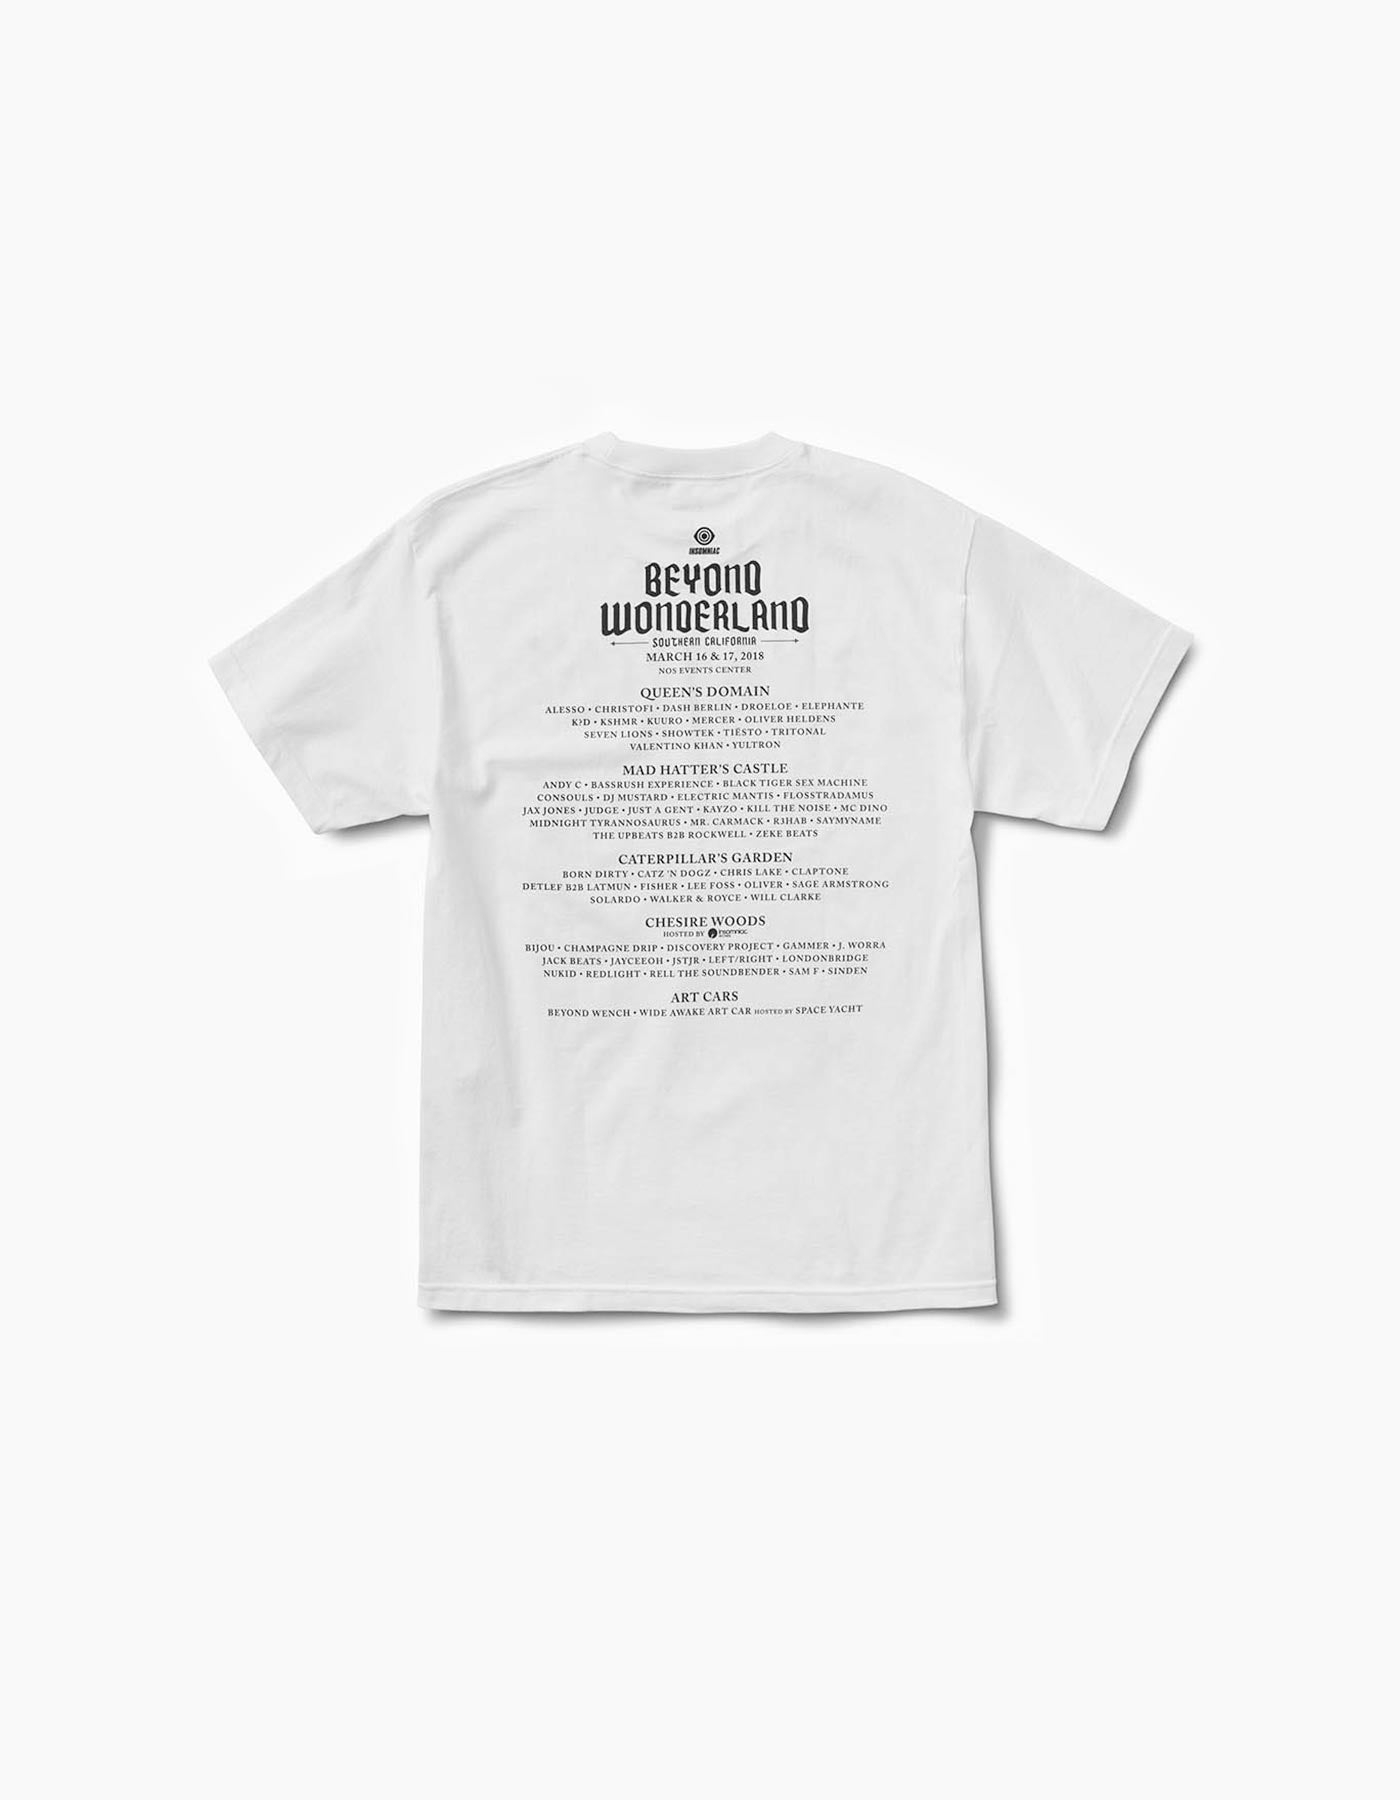 Beyond Wonderland 2018 Line Up Tee